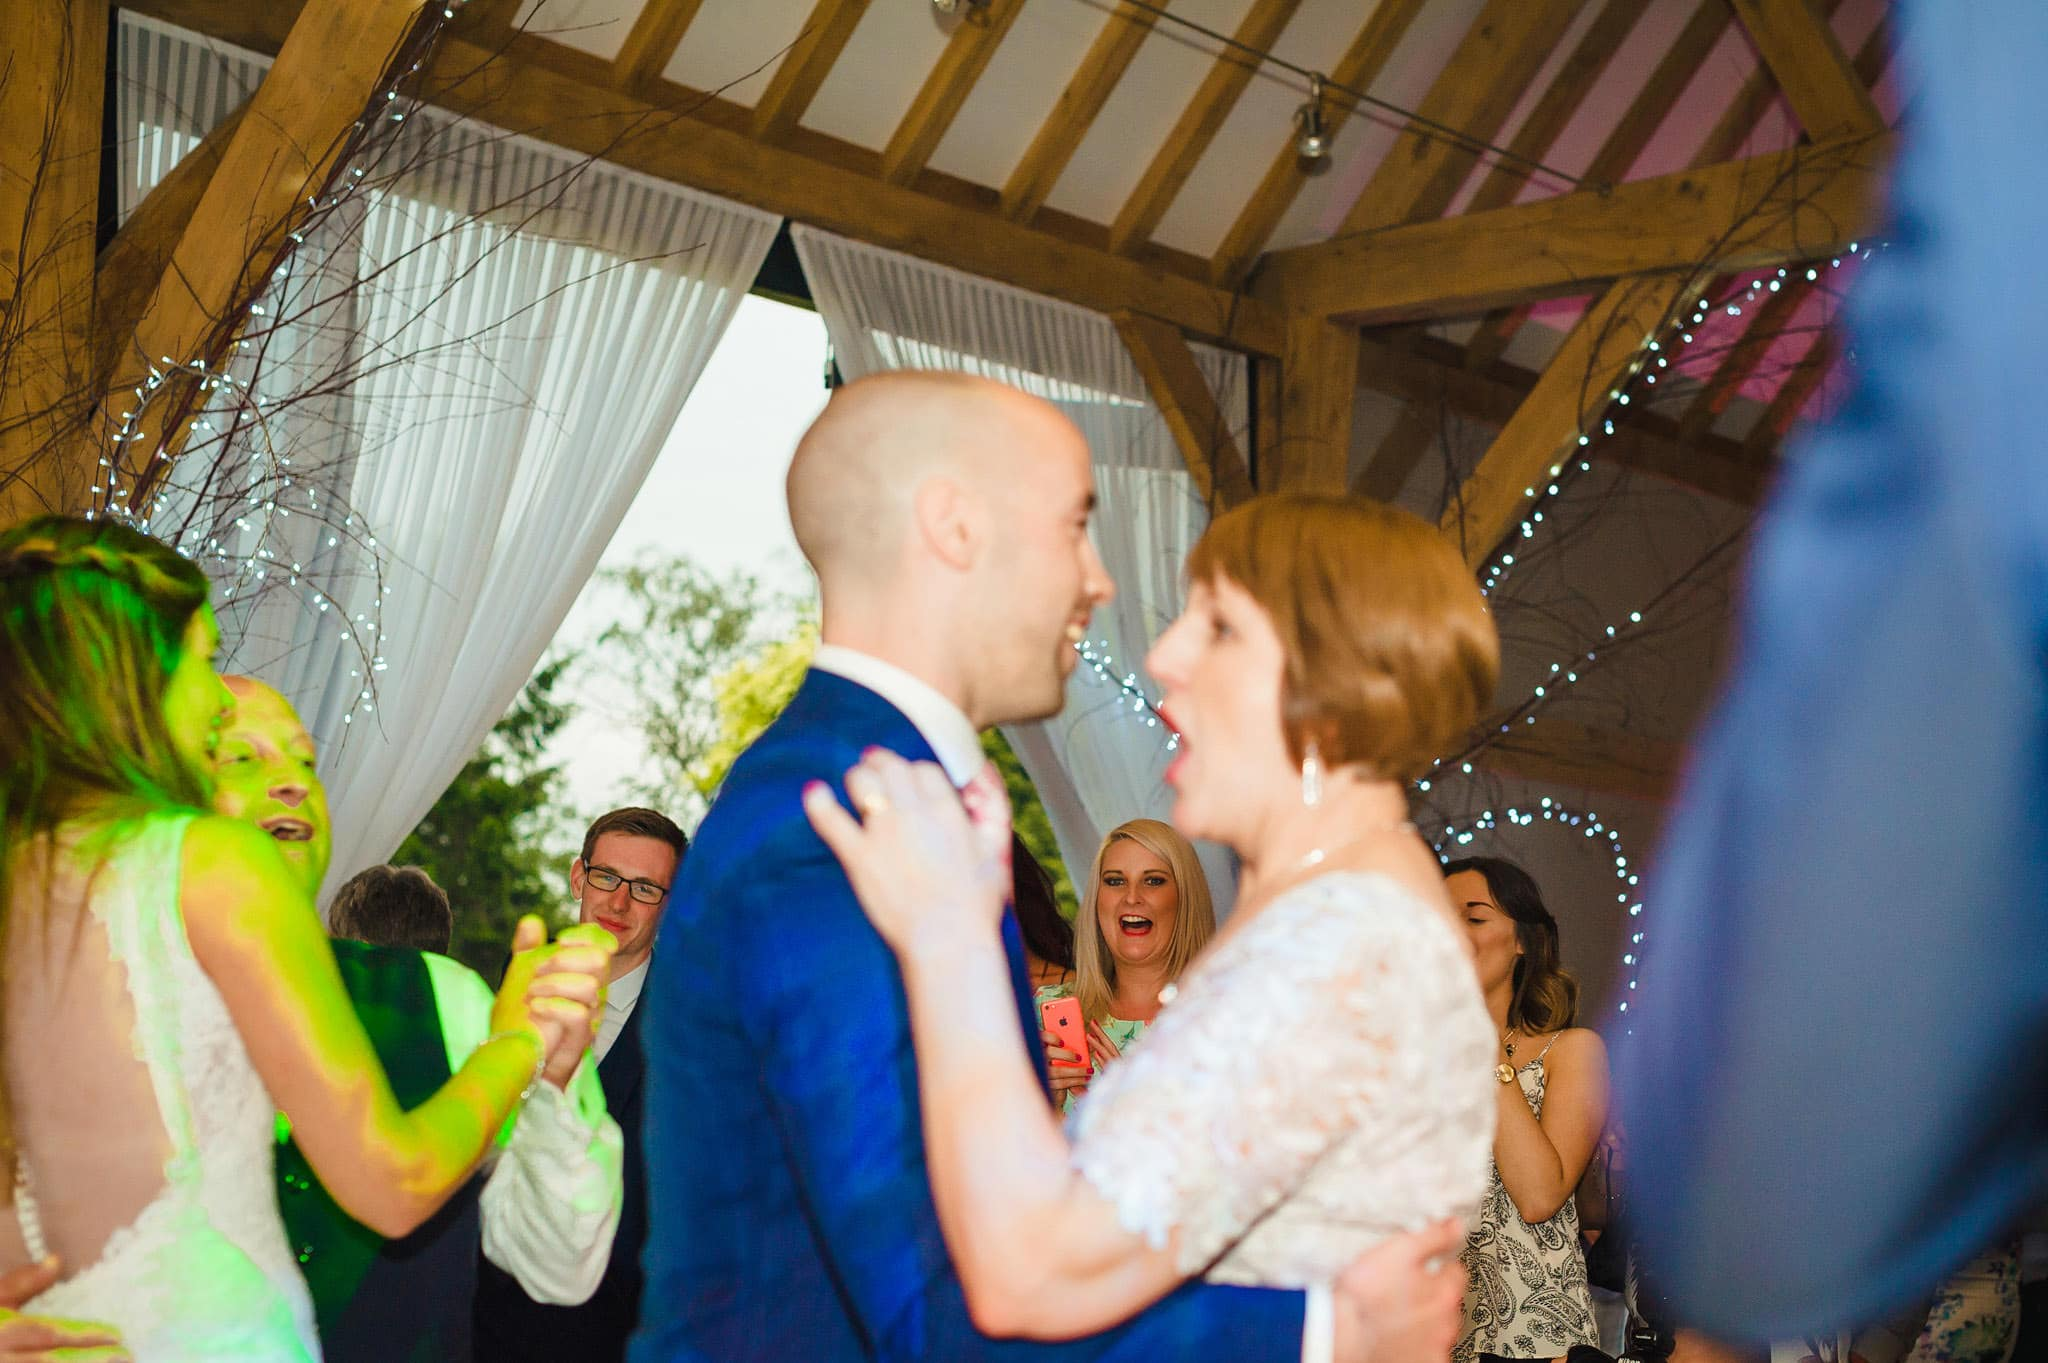 wedding at redhouse barn 216 - Wedding at Redhouse Barn in Stoke Prior, Worcestershire